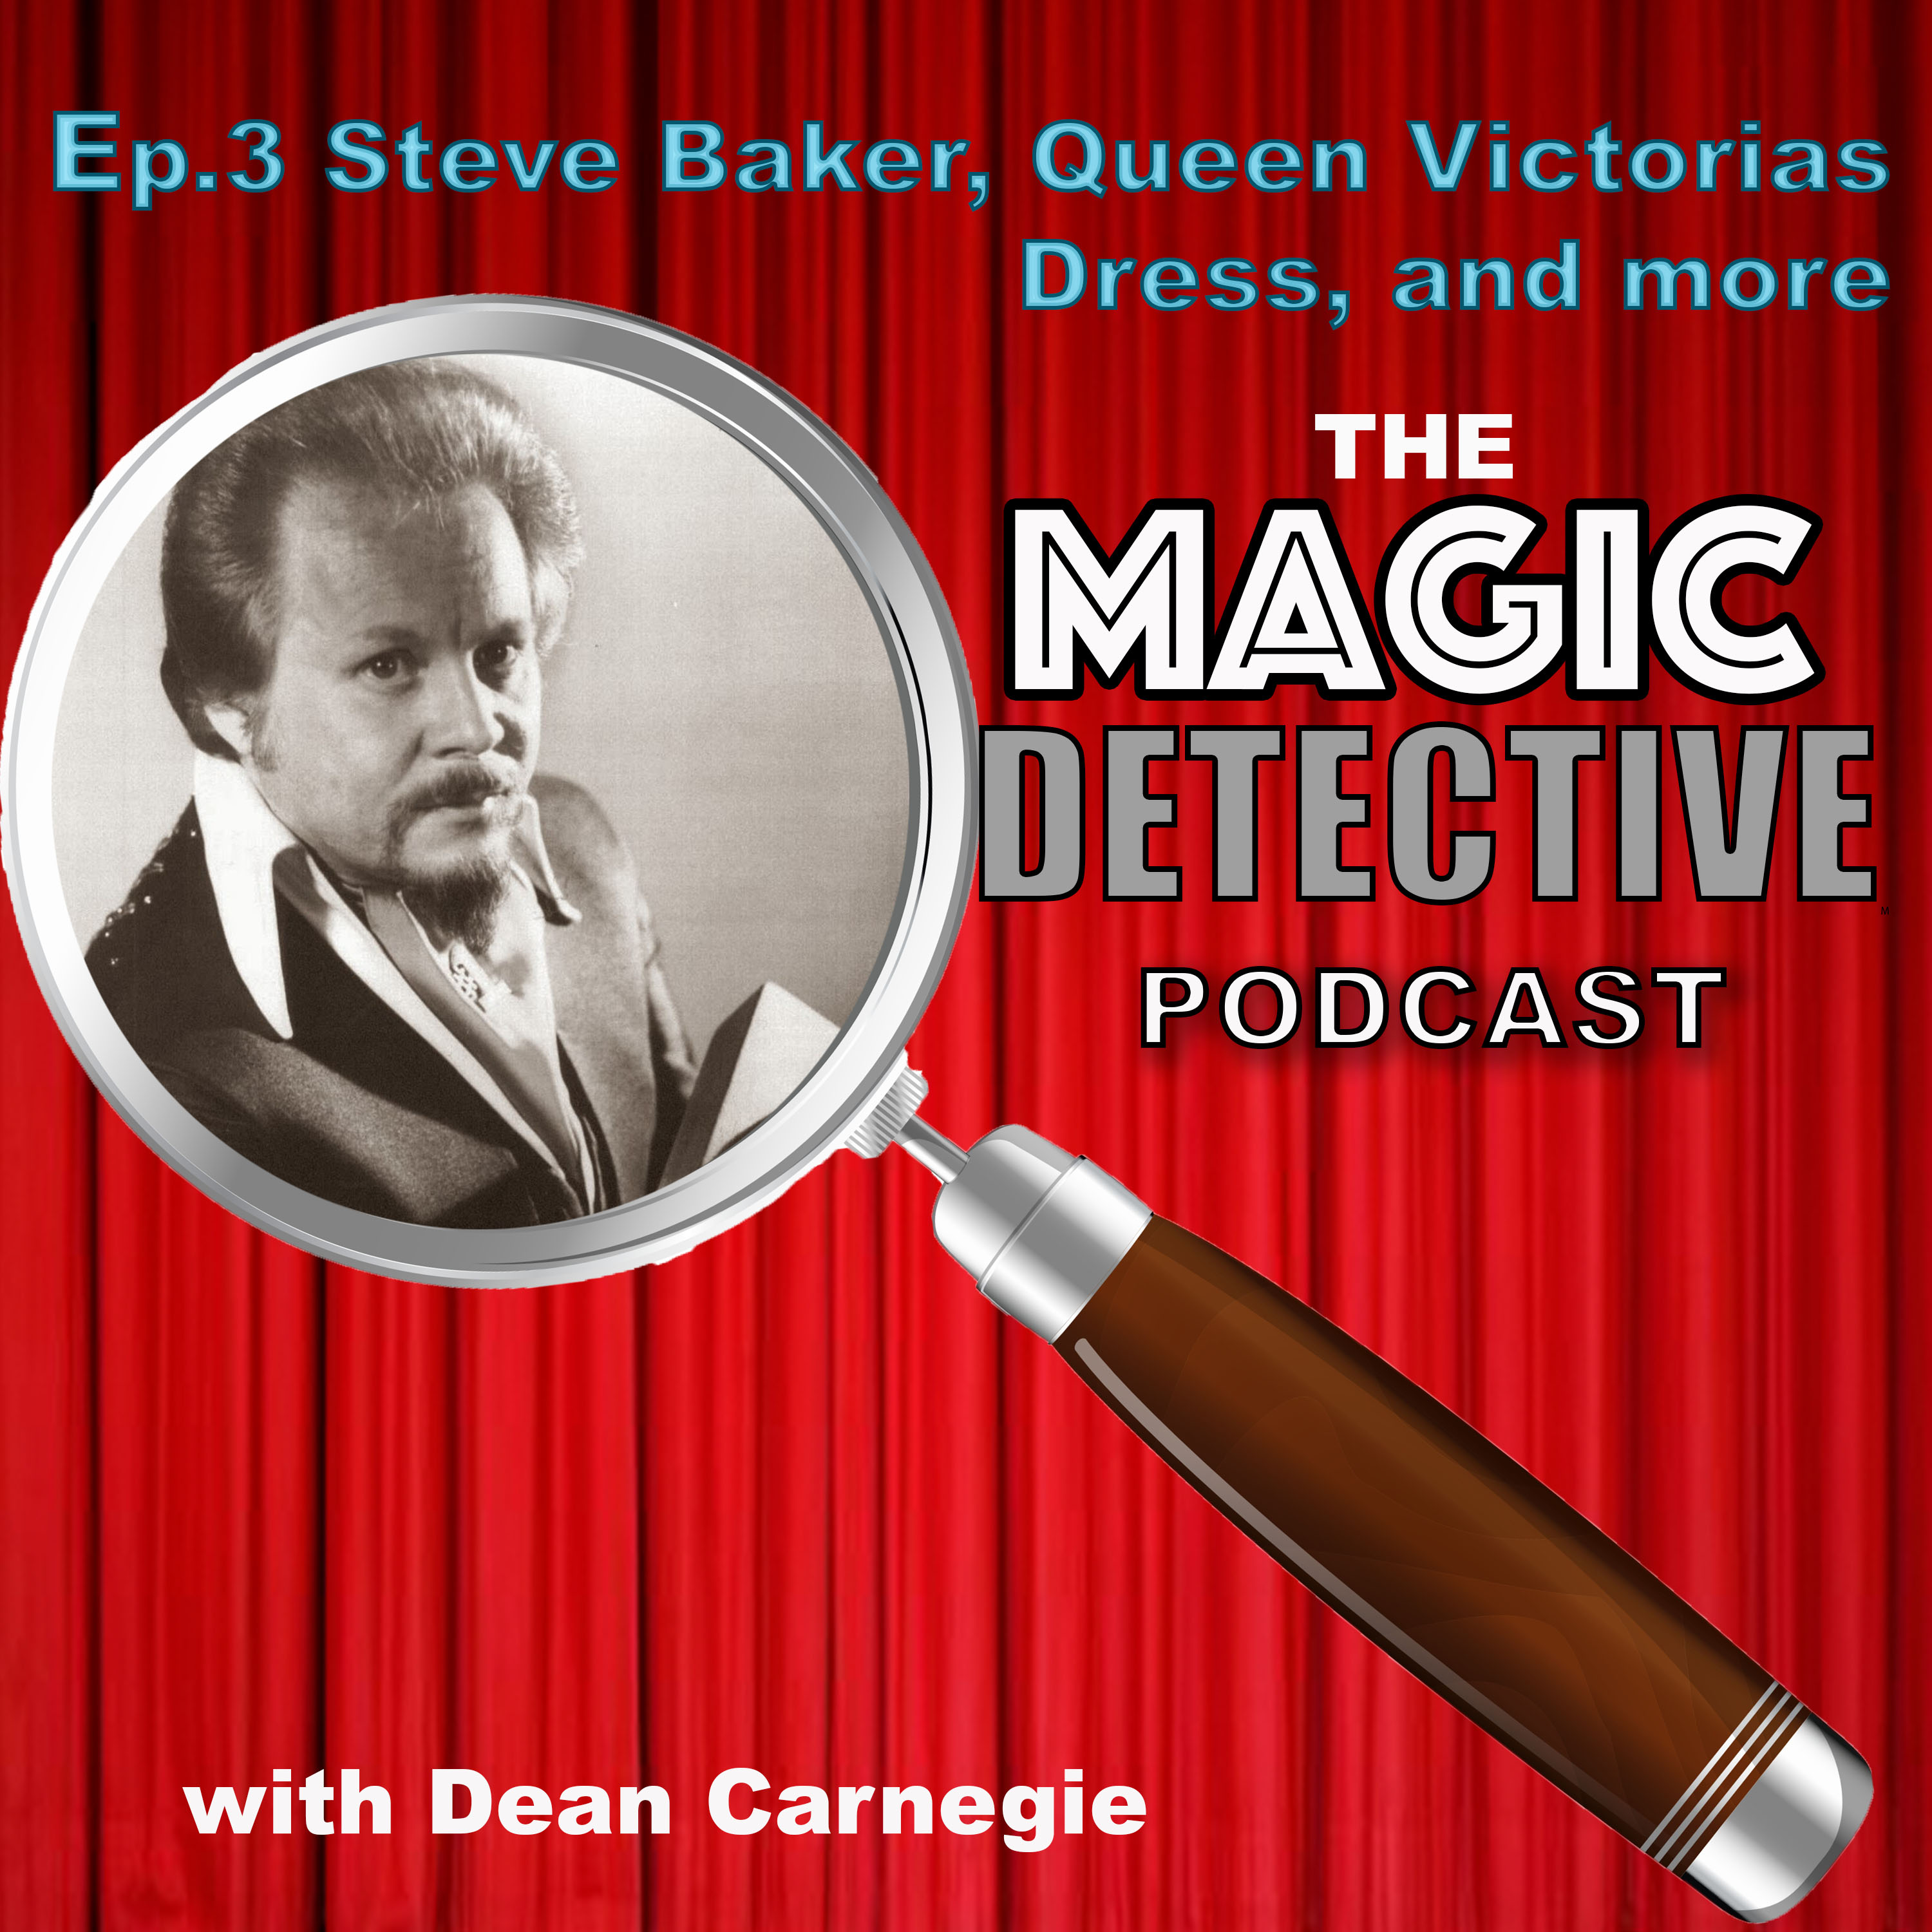 Magic Detective Podcast Episode 3